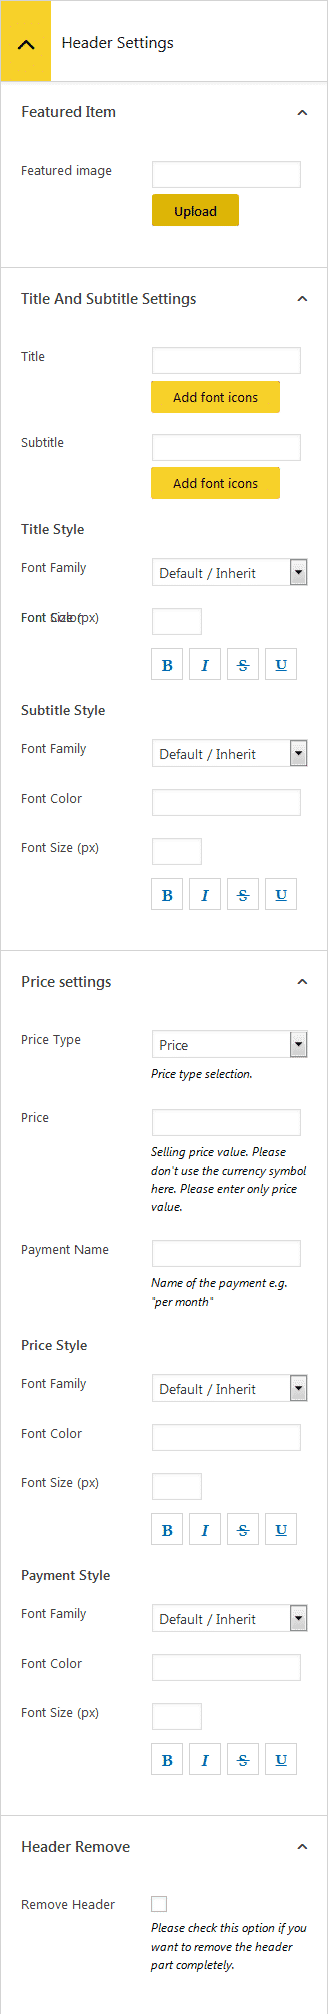 ap pricing tables lite column header settings - How to Add Pricing Tables on WordPress Website? (Step by Step Guide)